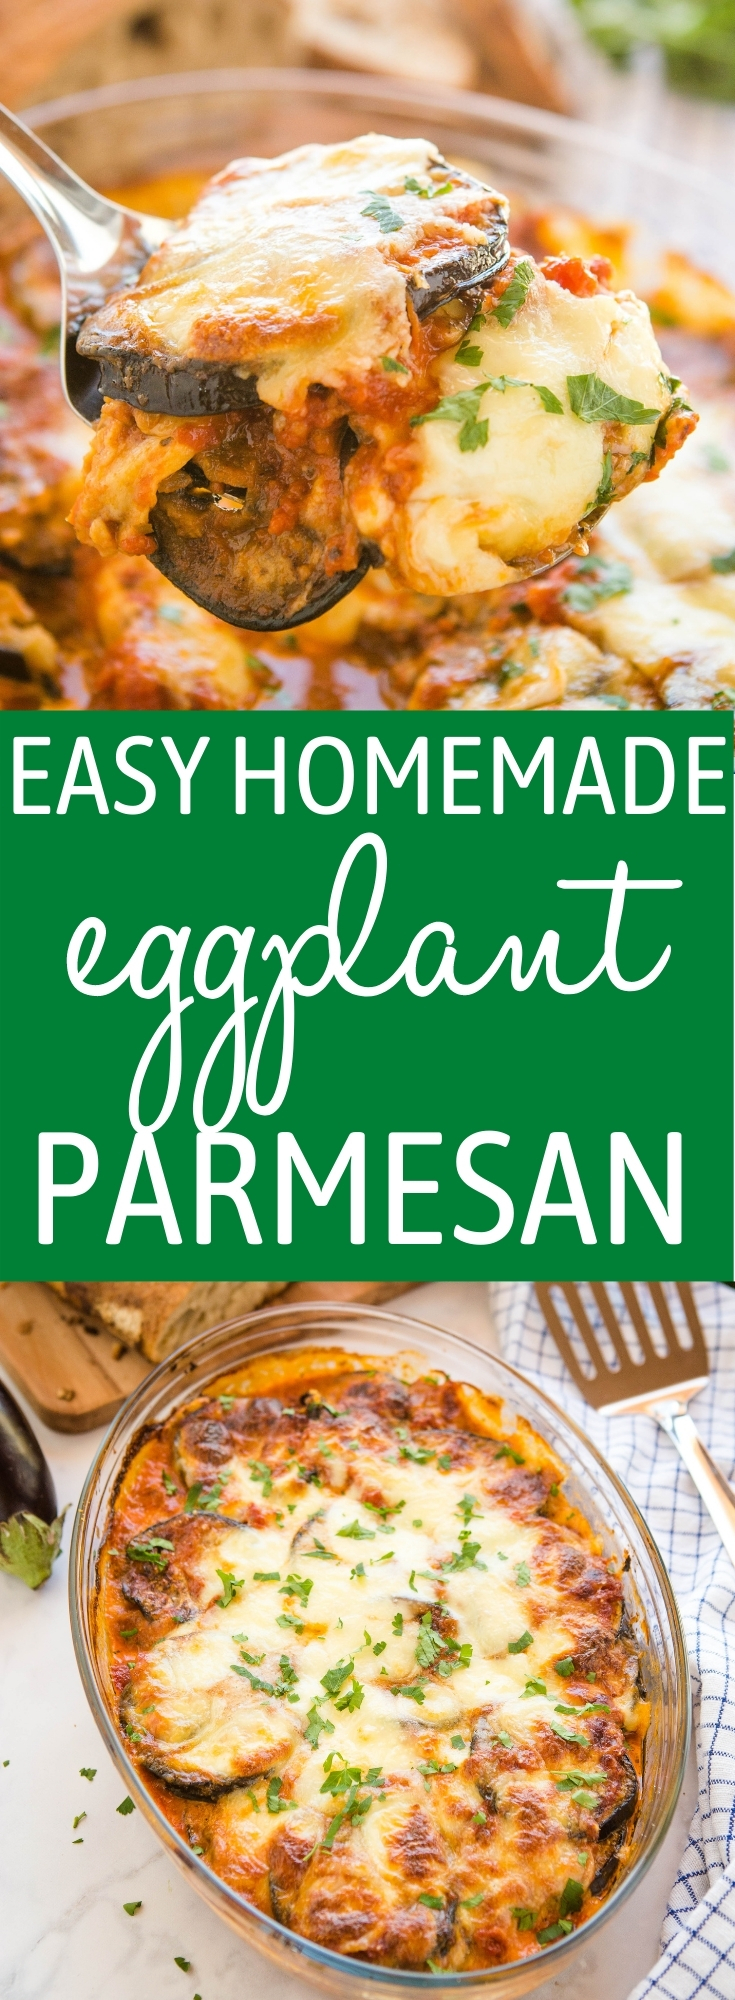 This Easy Eggplant Parmesan is a deliciously cheesy vegetarian meal idea made with fresh eggplants, savoury parmesan and mozzarella cheese, and an easy homemade tomato sauce! Recipe from thebusybaker.ca! #eggplantparmesan #parmesan #cheese #vegetarian #eggplant #plantbased #mealidea #weeknightmeal #easymeal #familymeal #italian via @busybakerblog